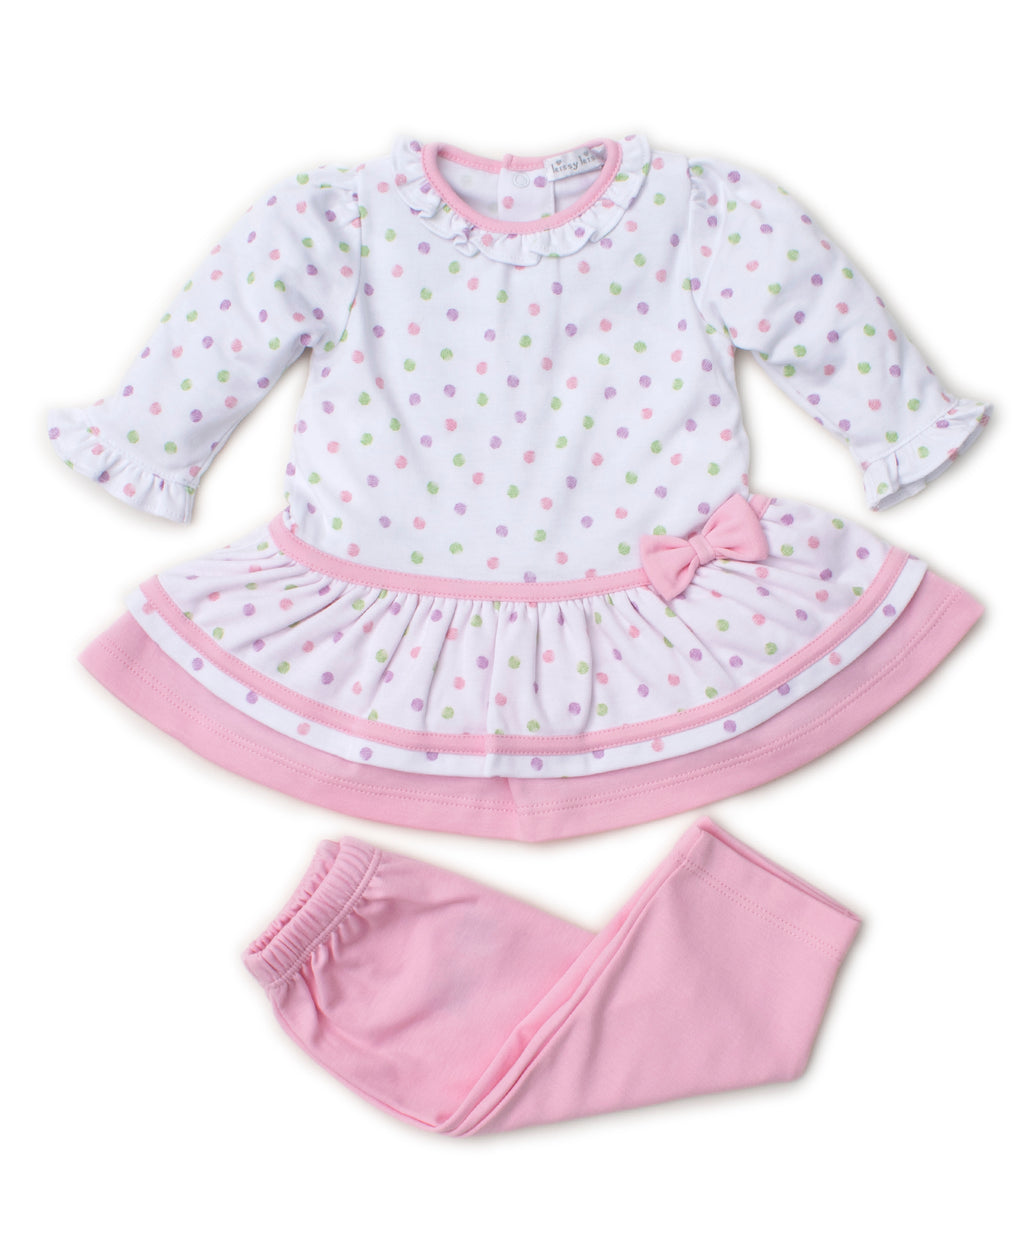 Dapple Dots Dress Set